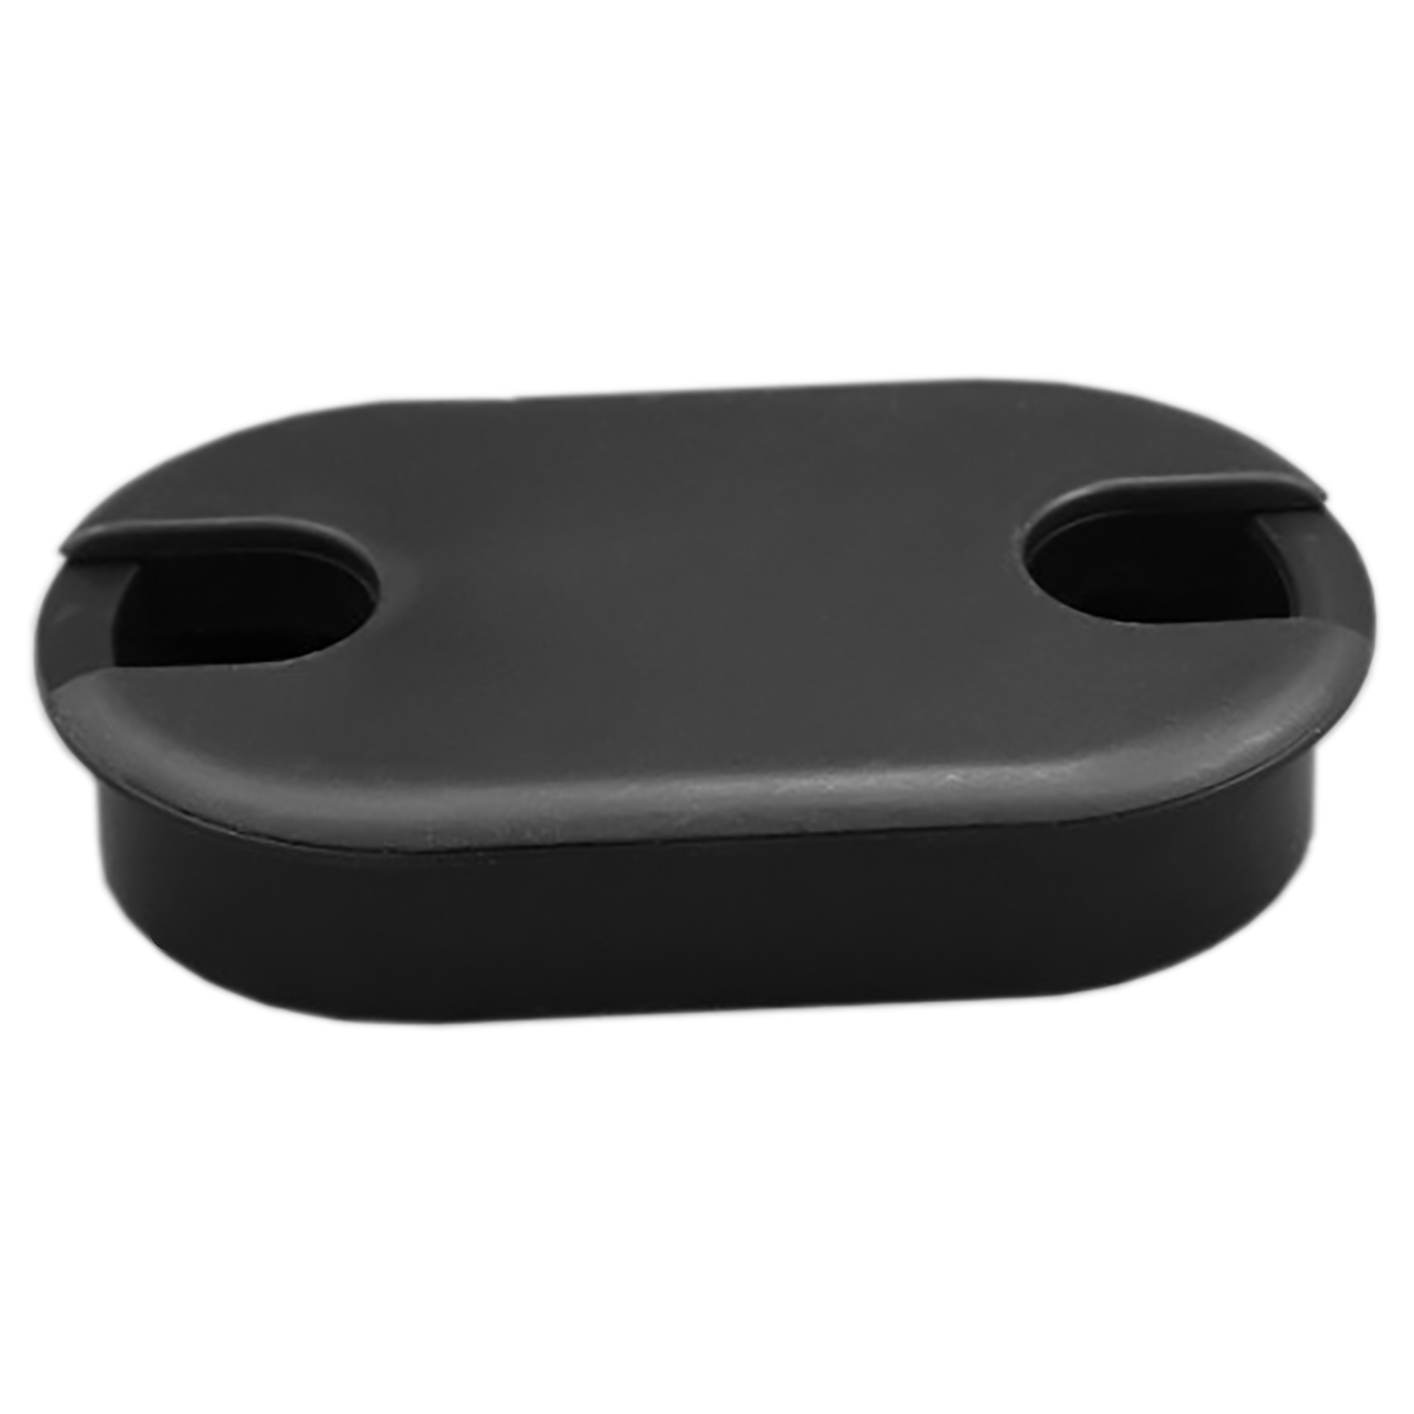 Grommet oval 3 1 4 x 1 3 4 black 03 2219 marathon for 3 furniture grommet